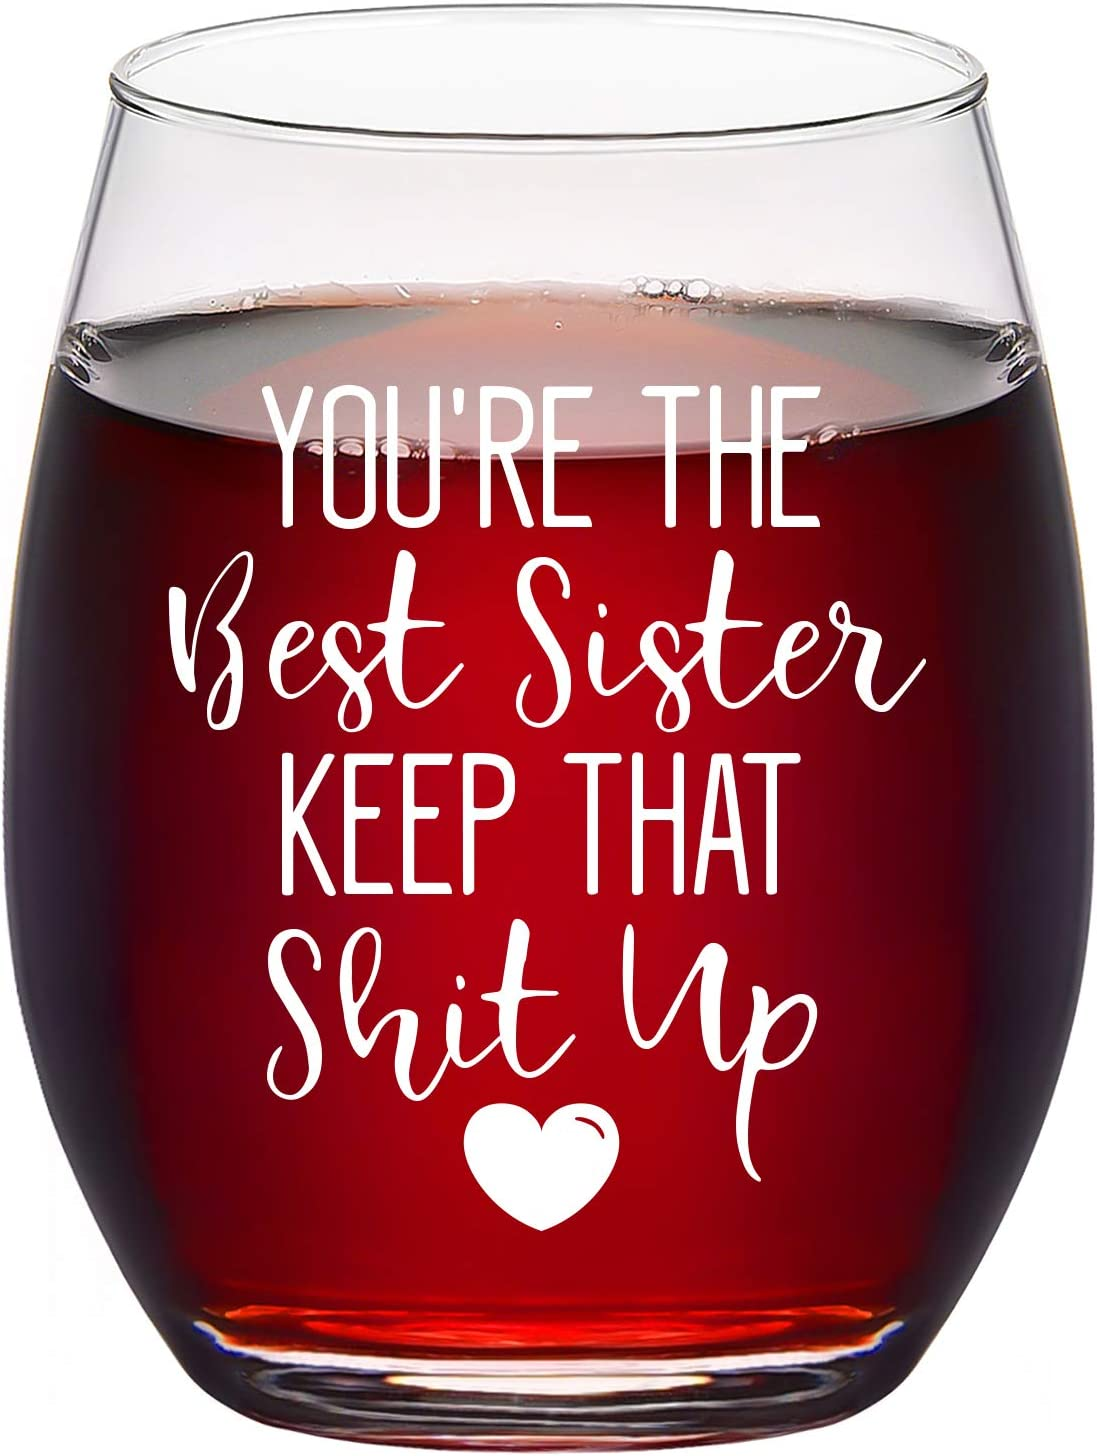 Sister Gift - You're The Best Sister Keep That S Up Wine Glass, Funny Sister Stemless Wine Glass 15Oz - Funny Birthday Gift, Christmas Gifts for Women, Girls, Soul Sisters, Best Friends, Sister in-Law